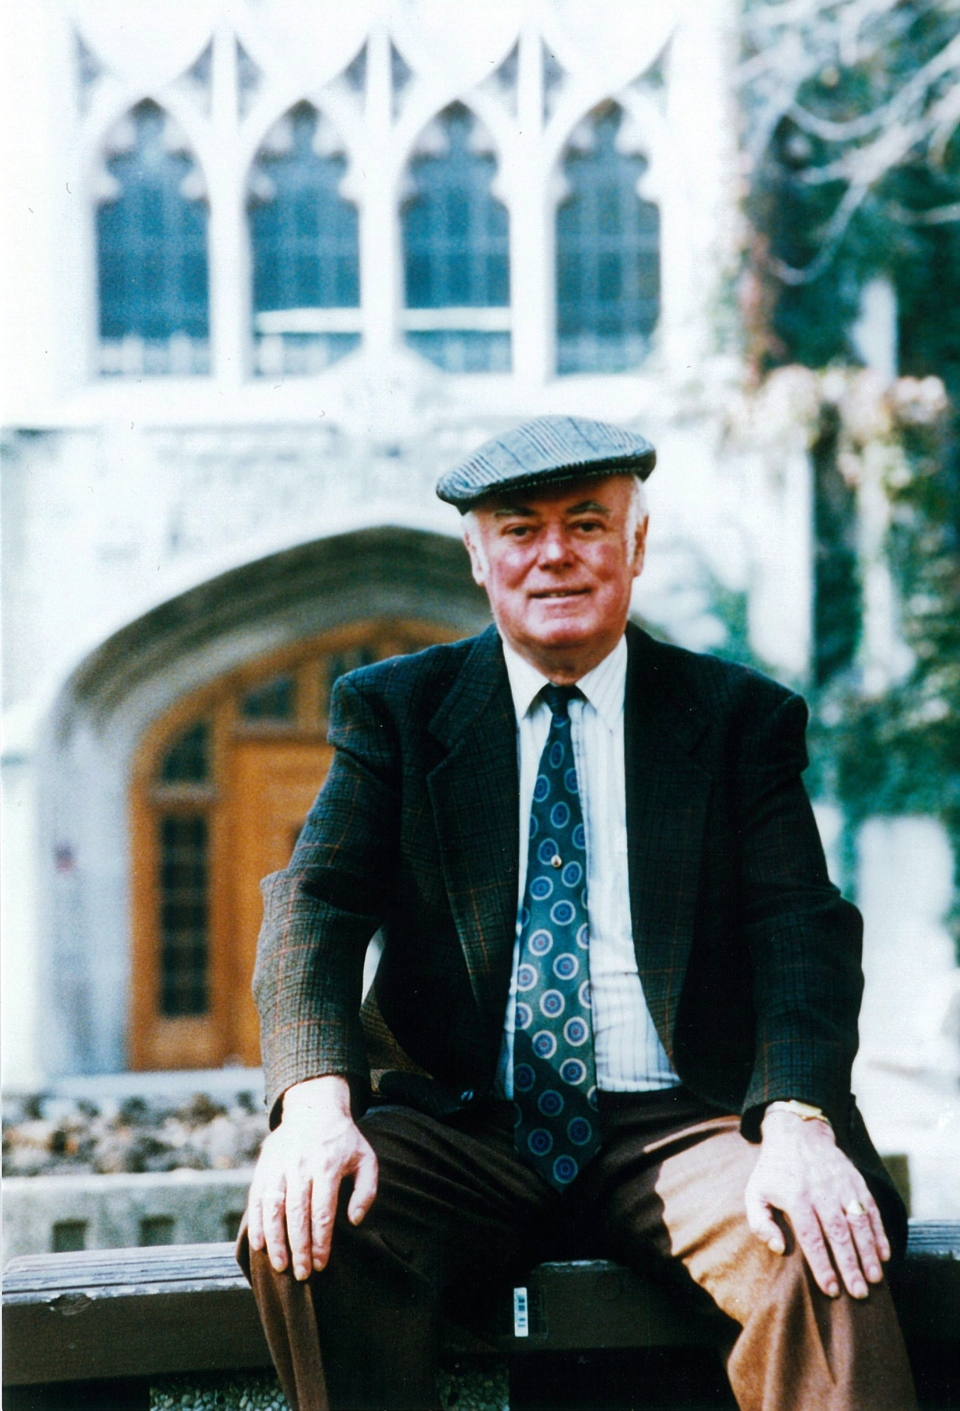 Canadian author Alistair MacLeod is shown in an undated handout photo. (Provided / Ted Rhodes)